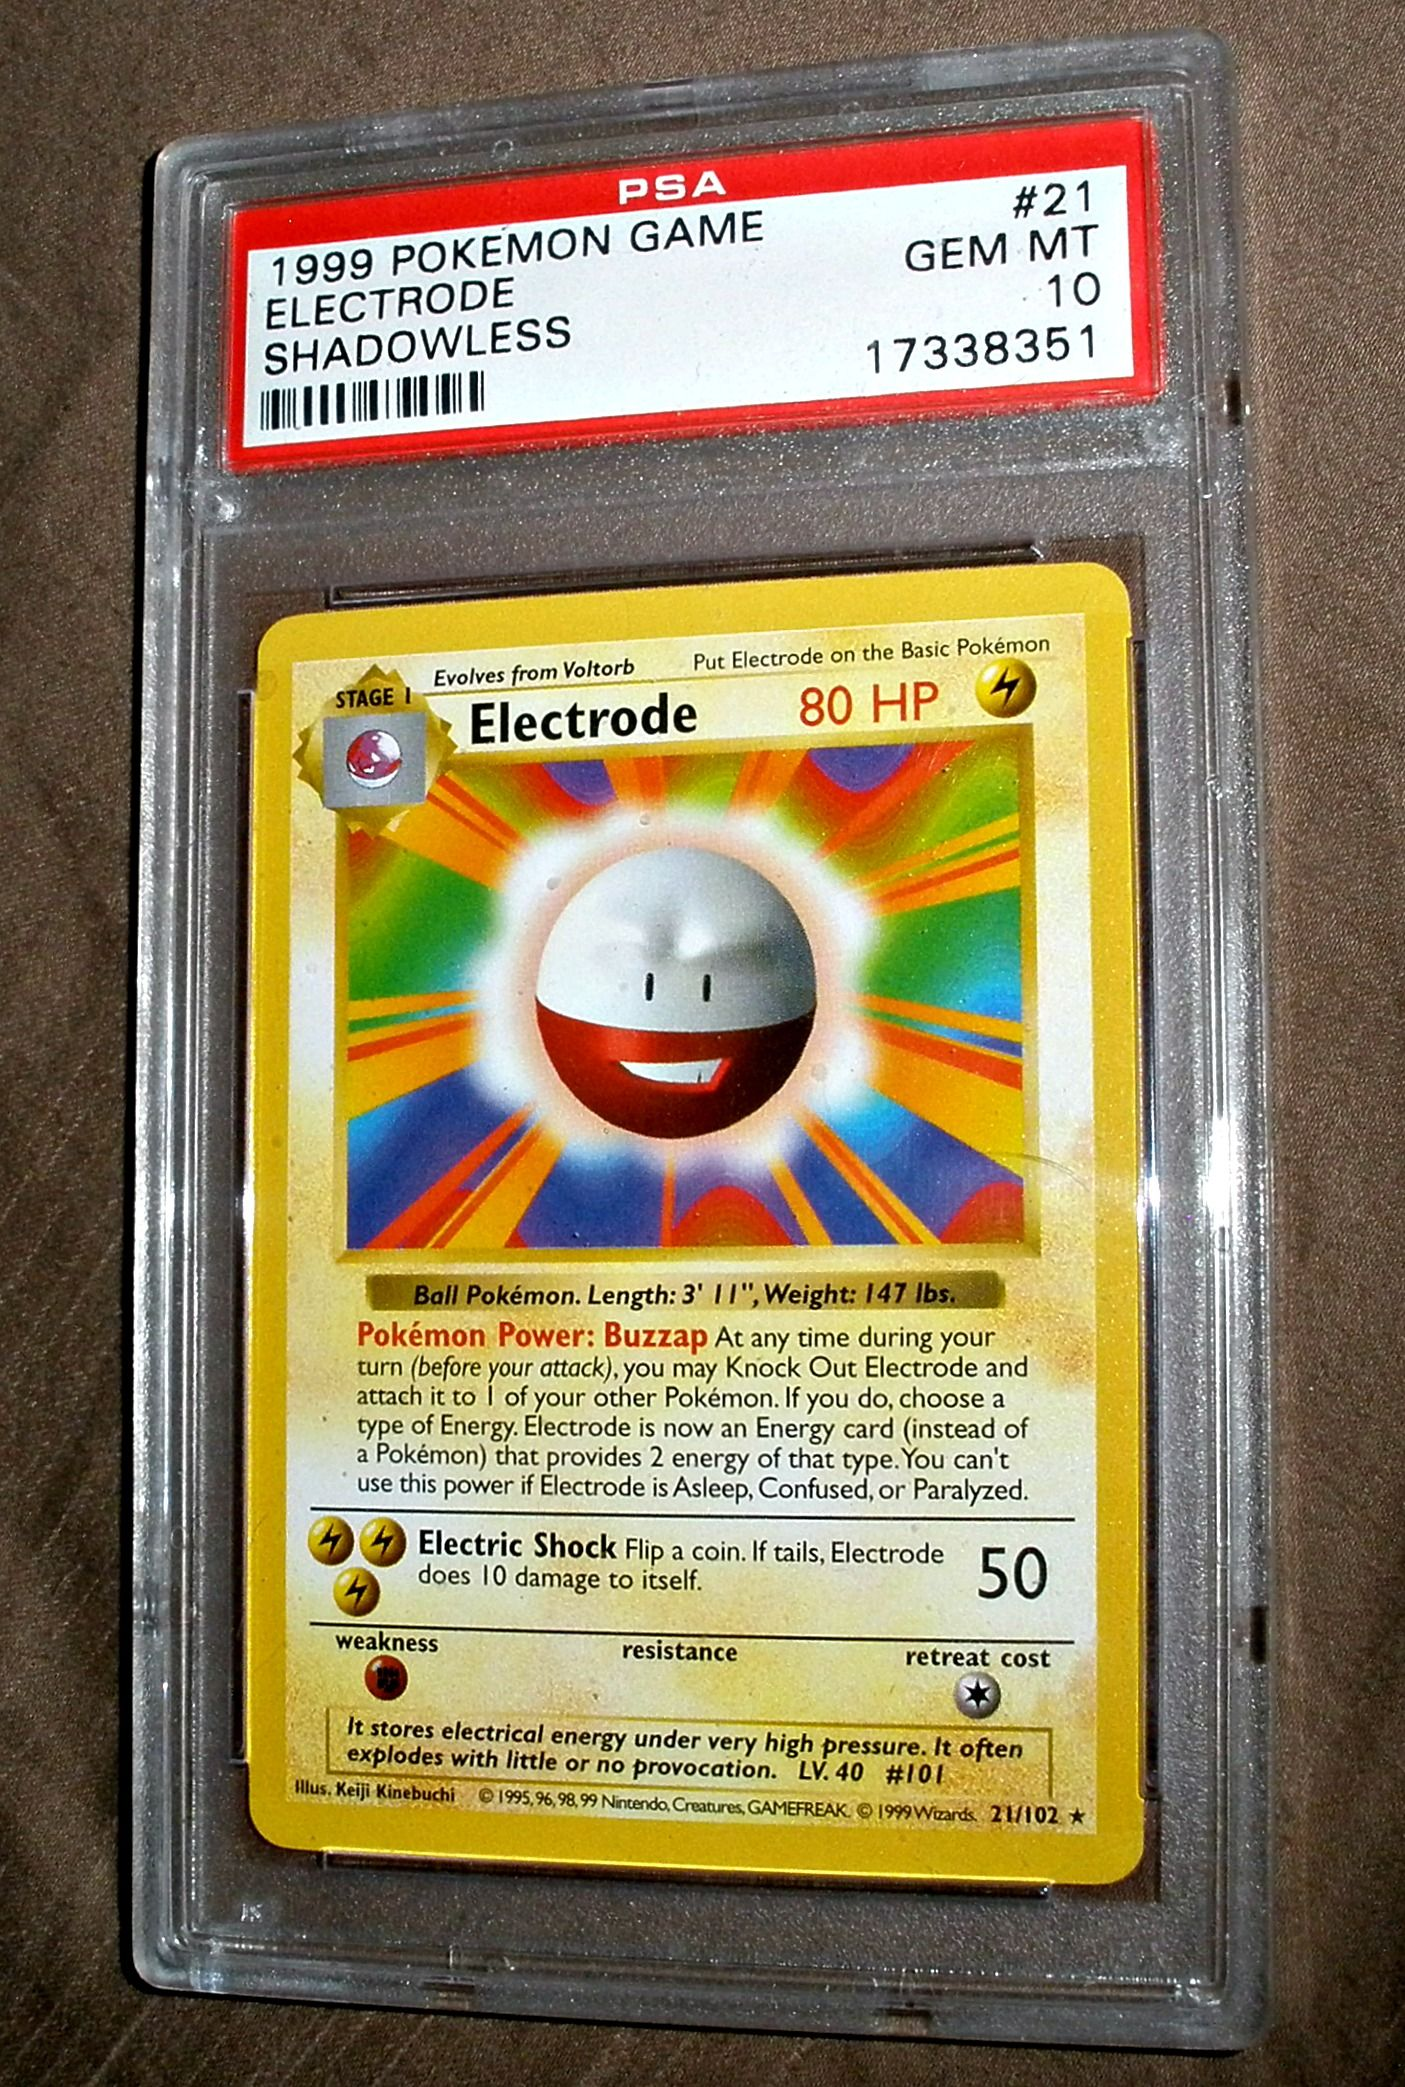 COOL ELECTRODE POKEMON CARDS